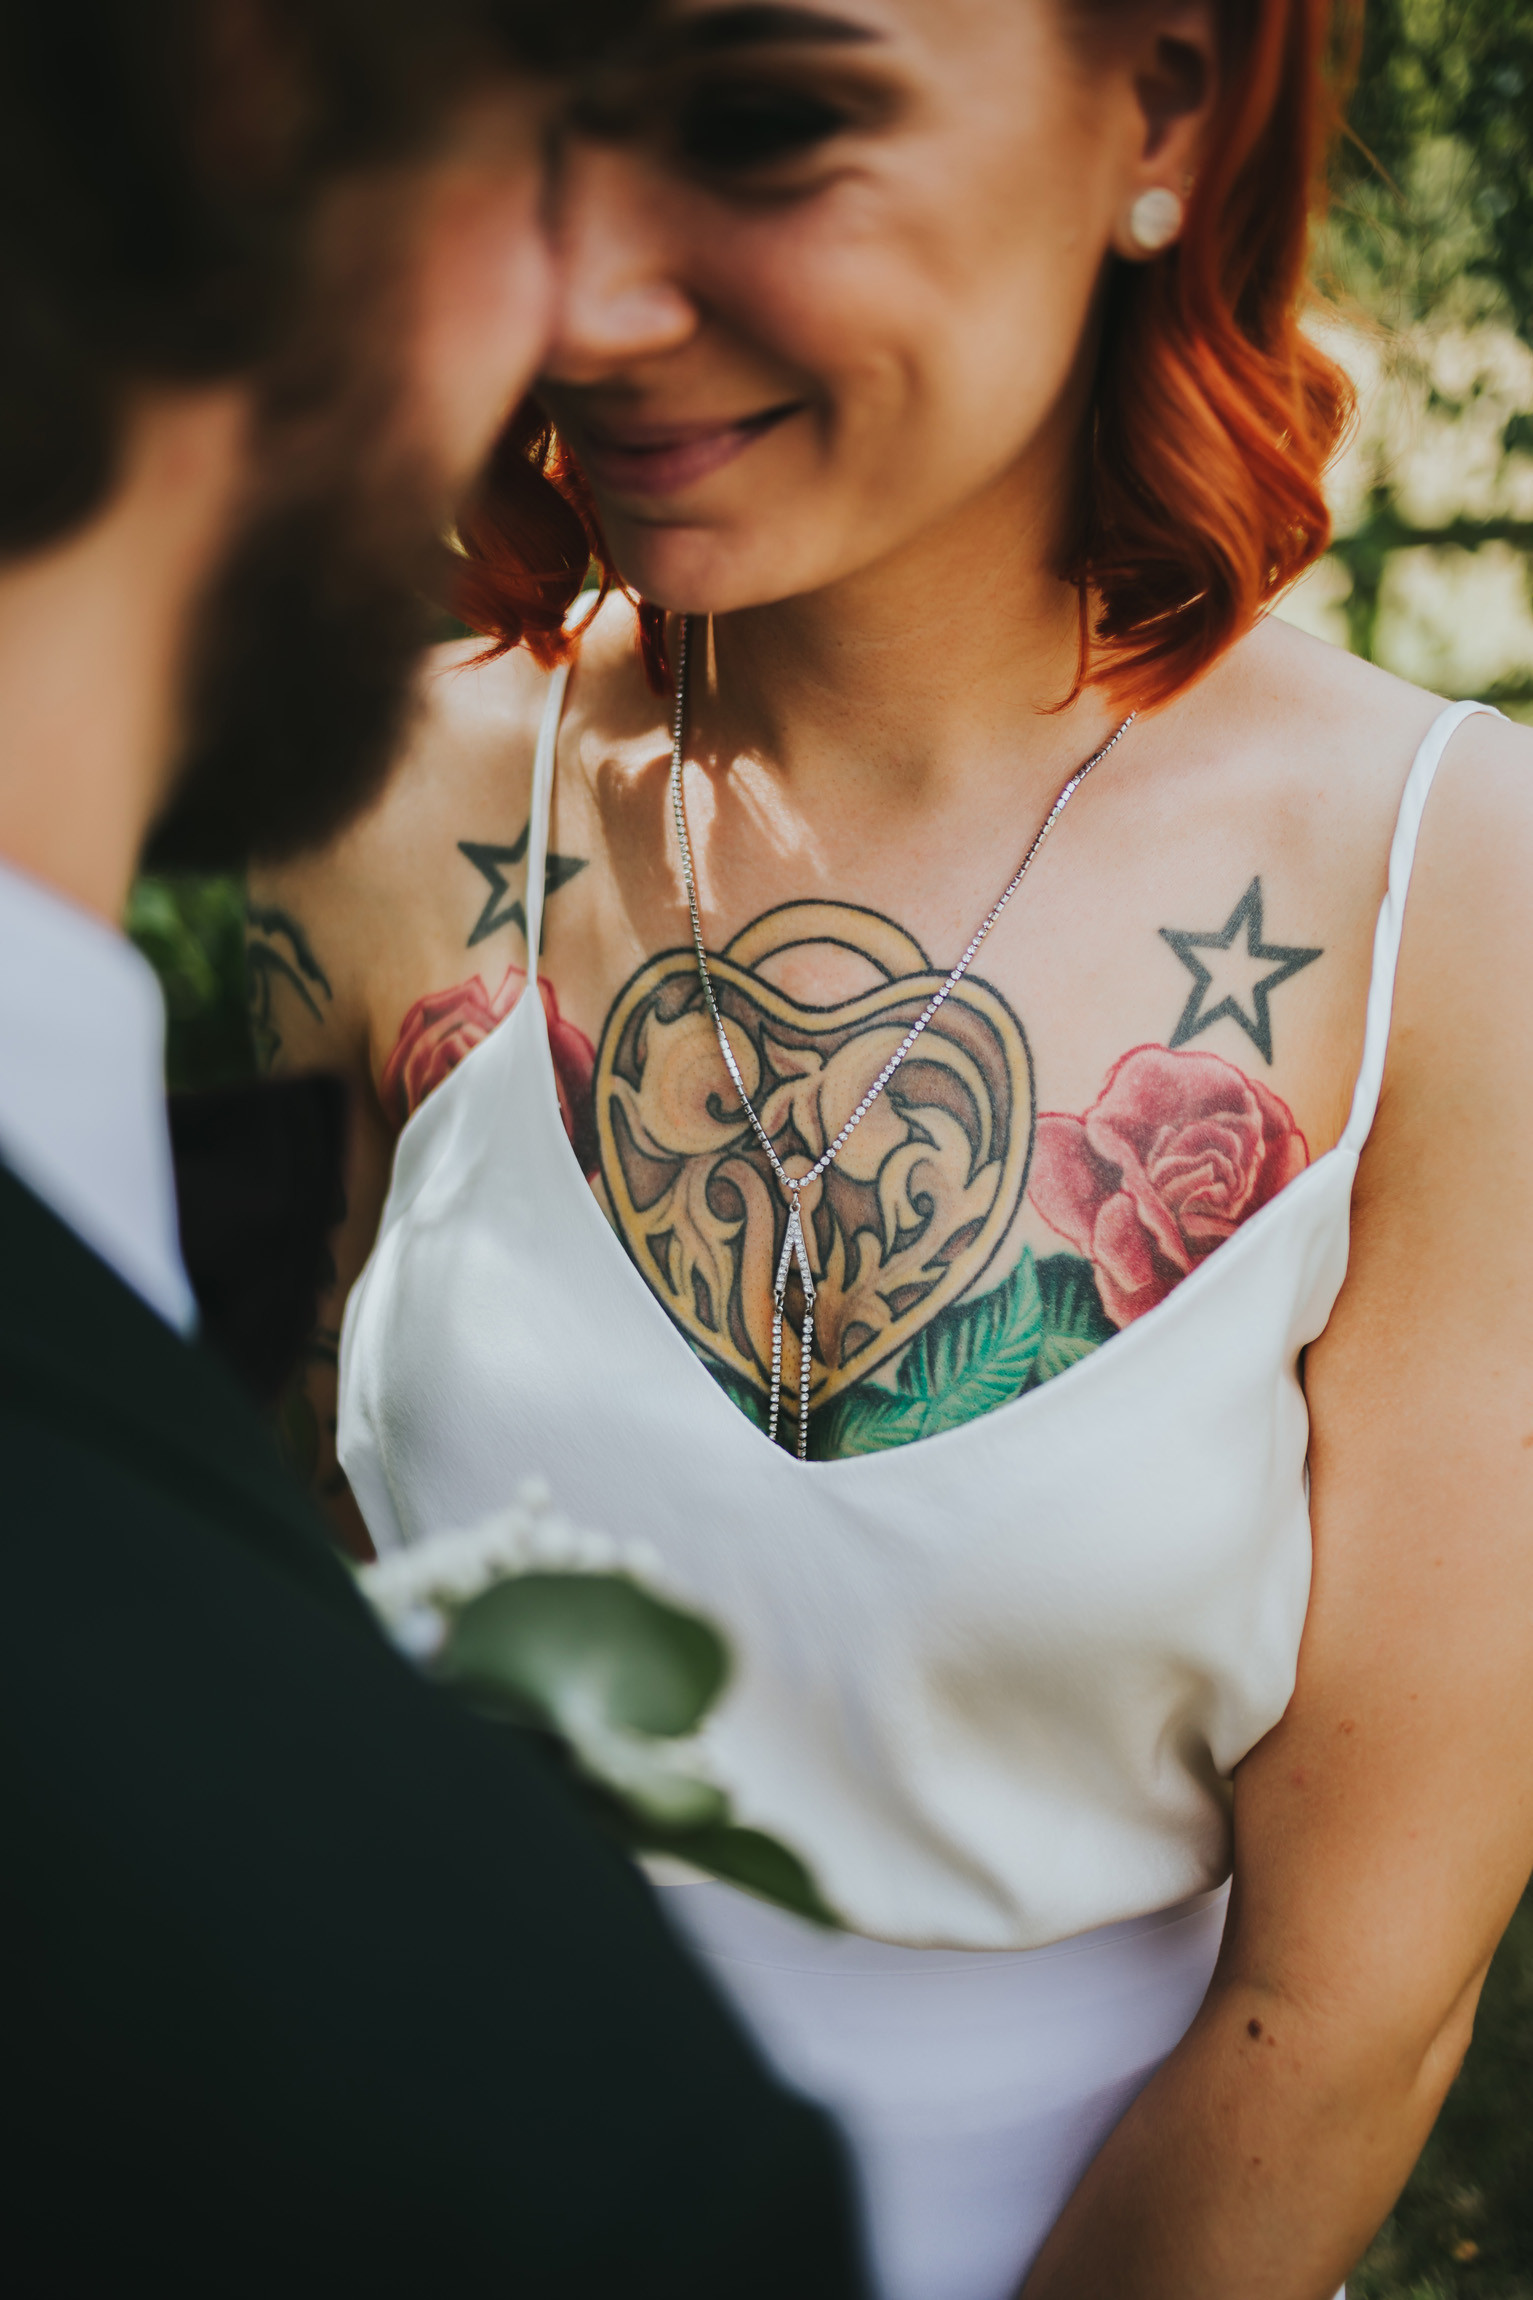 bride with a chest tattoo on show through her dress smiling at the groom